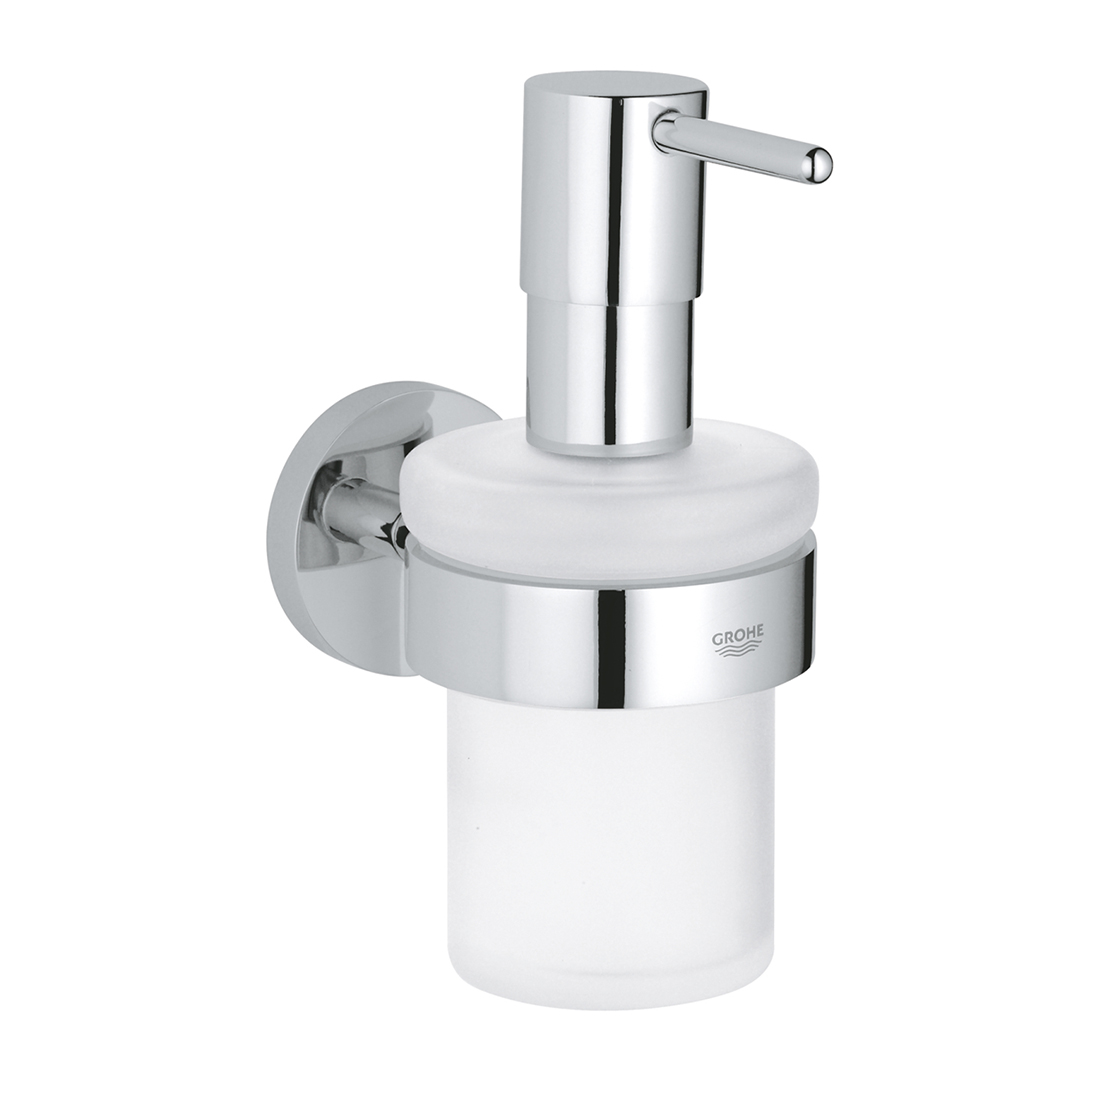 Grohe 40448001 Essentials Soap Dispenser with Holder